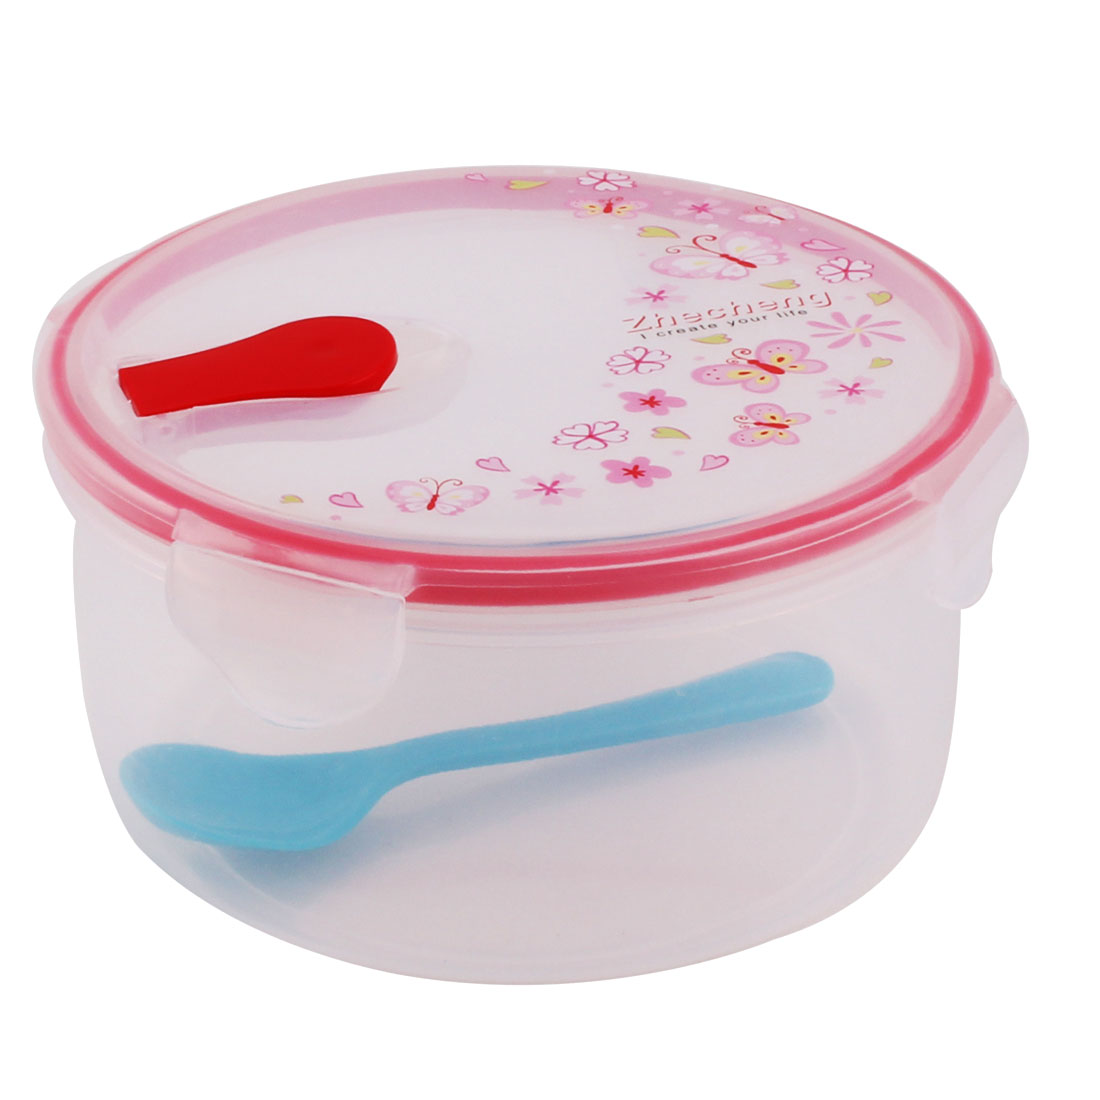 Outdoor Plastic Cylinder Flower Pattern Lunch Breakfast Food Holder Box Case Red